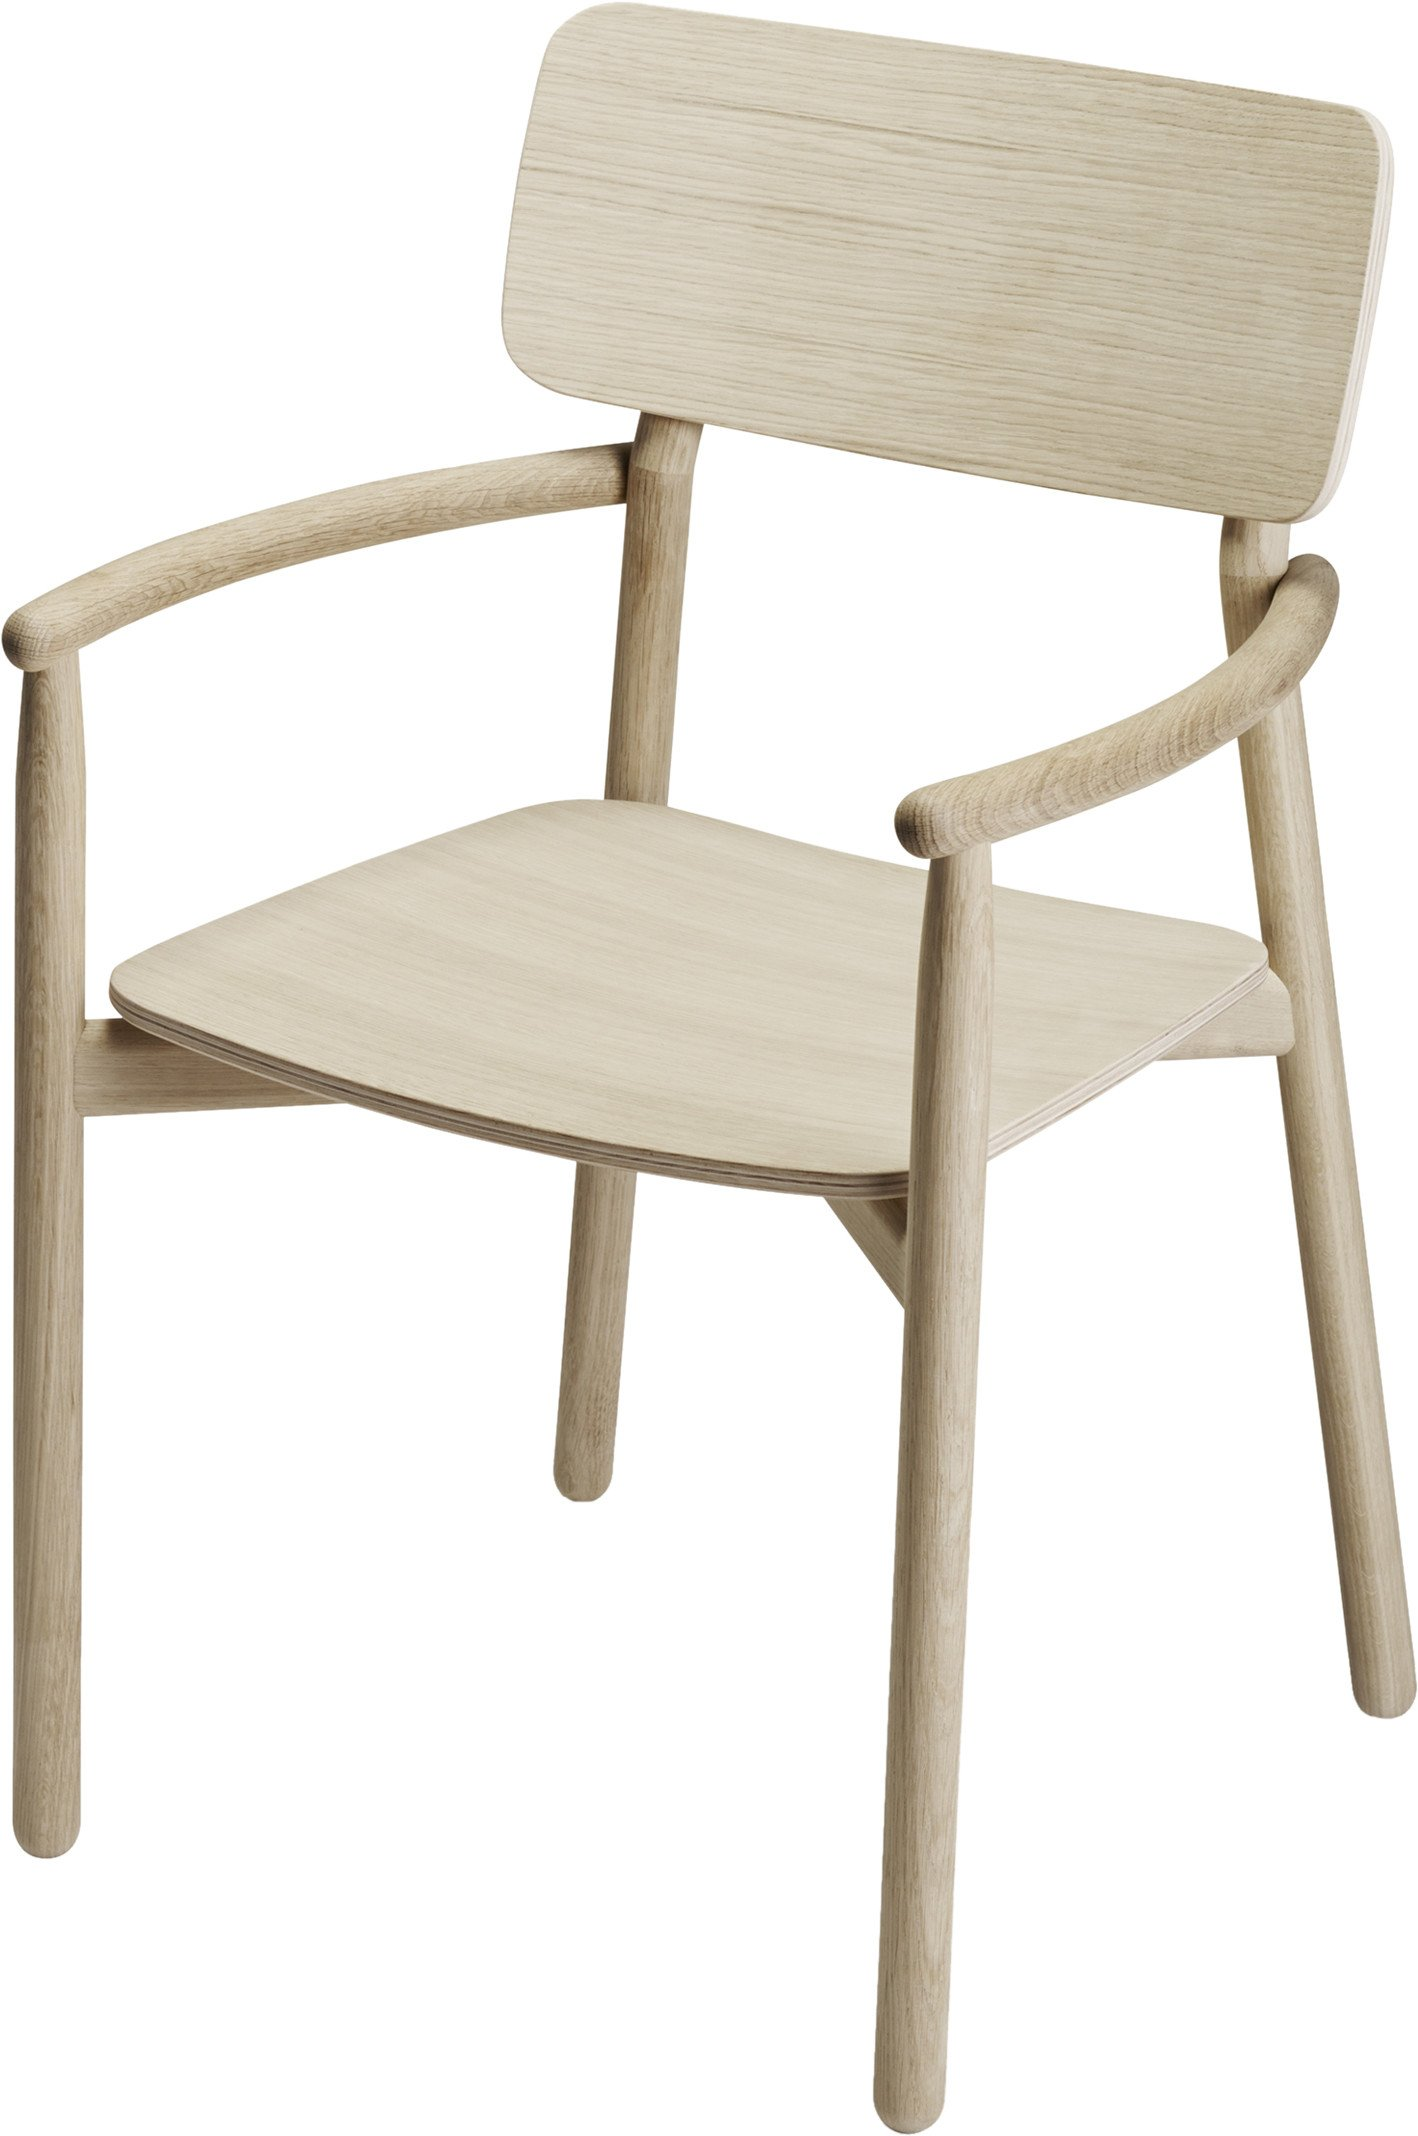 Hven Armchair, by A. Björsing for Skagerak